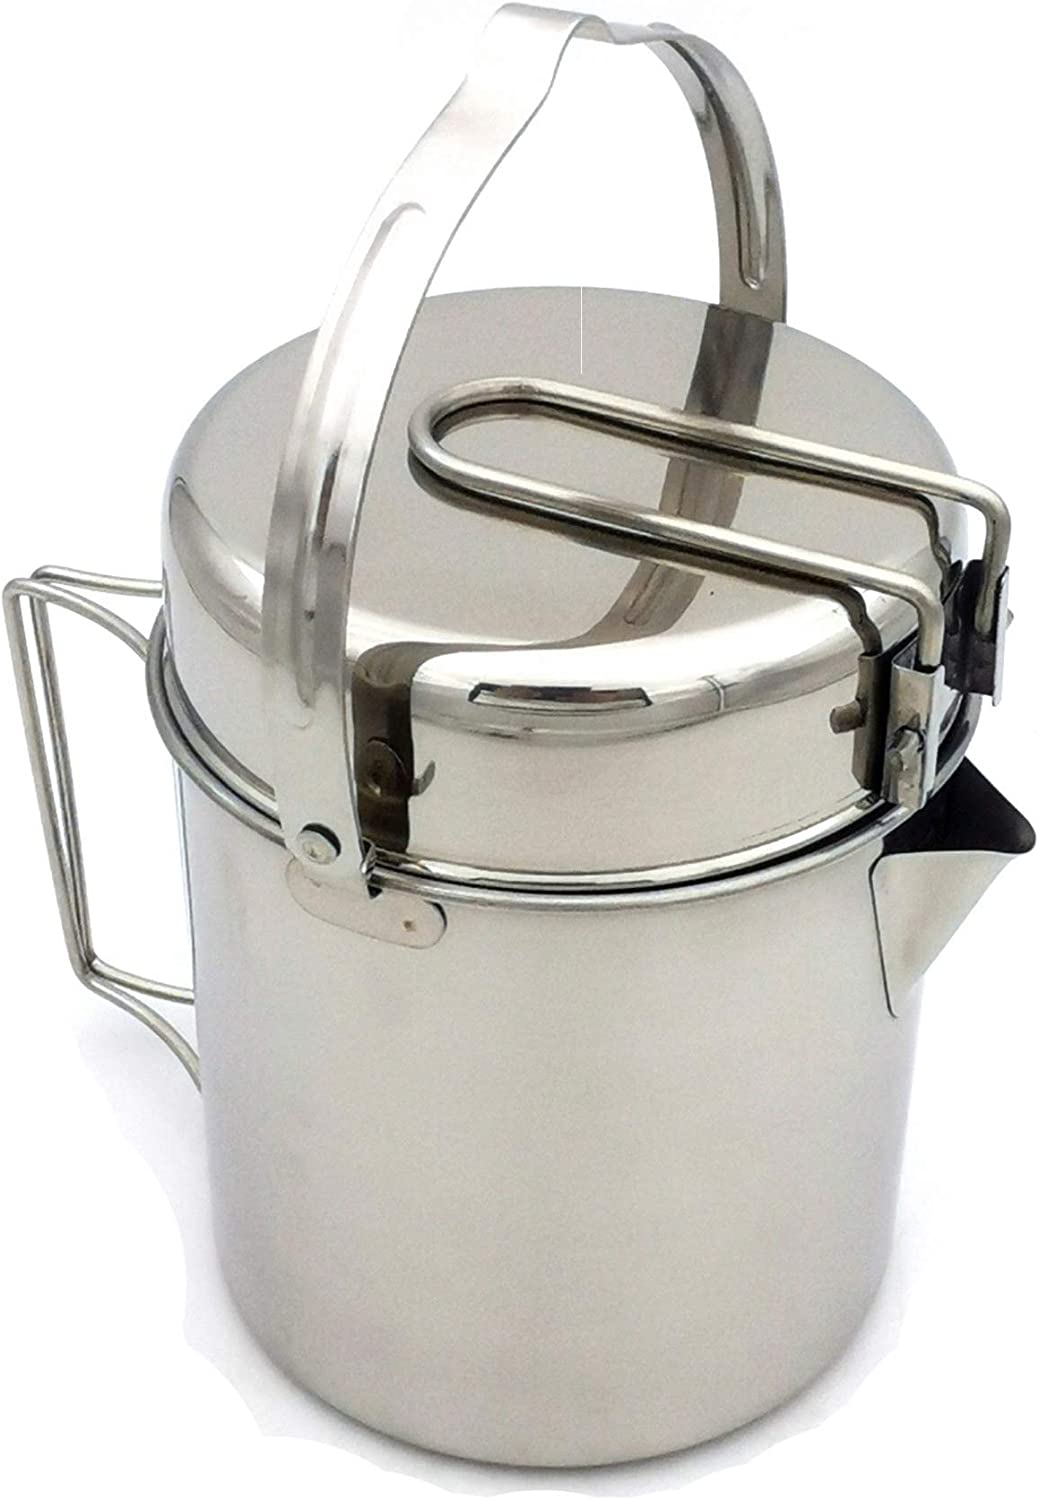 Campfire Hanging Cooking Kettle Cookware with Long Spout Outdoor Kettles Pot